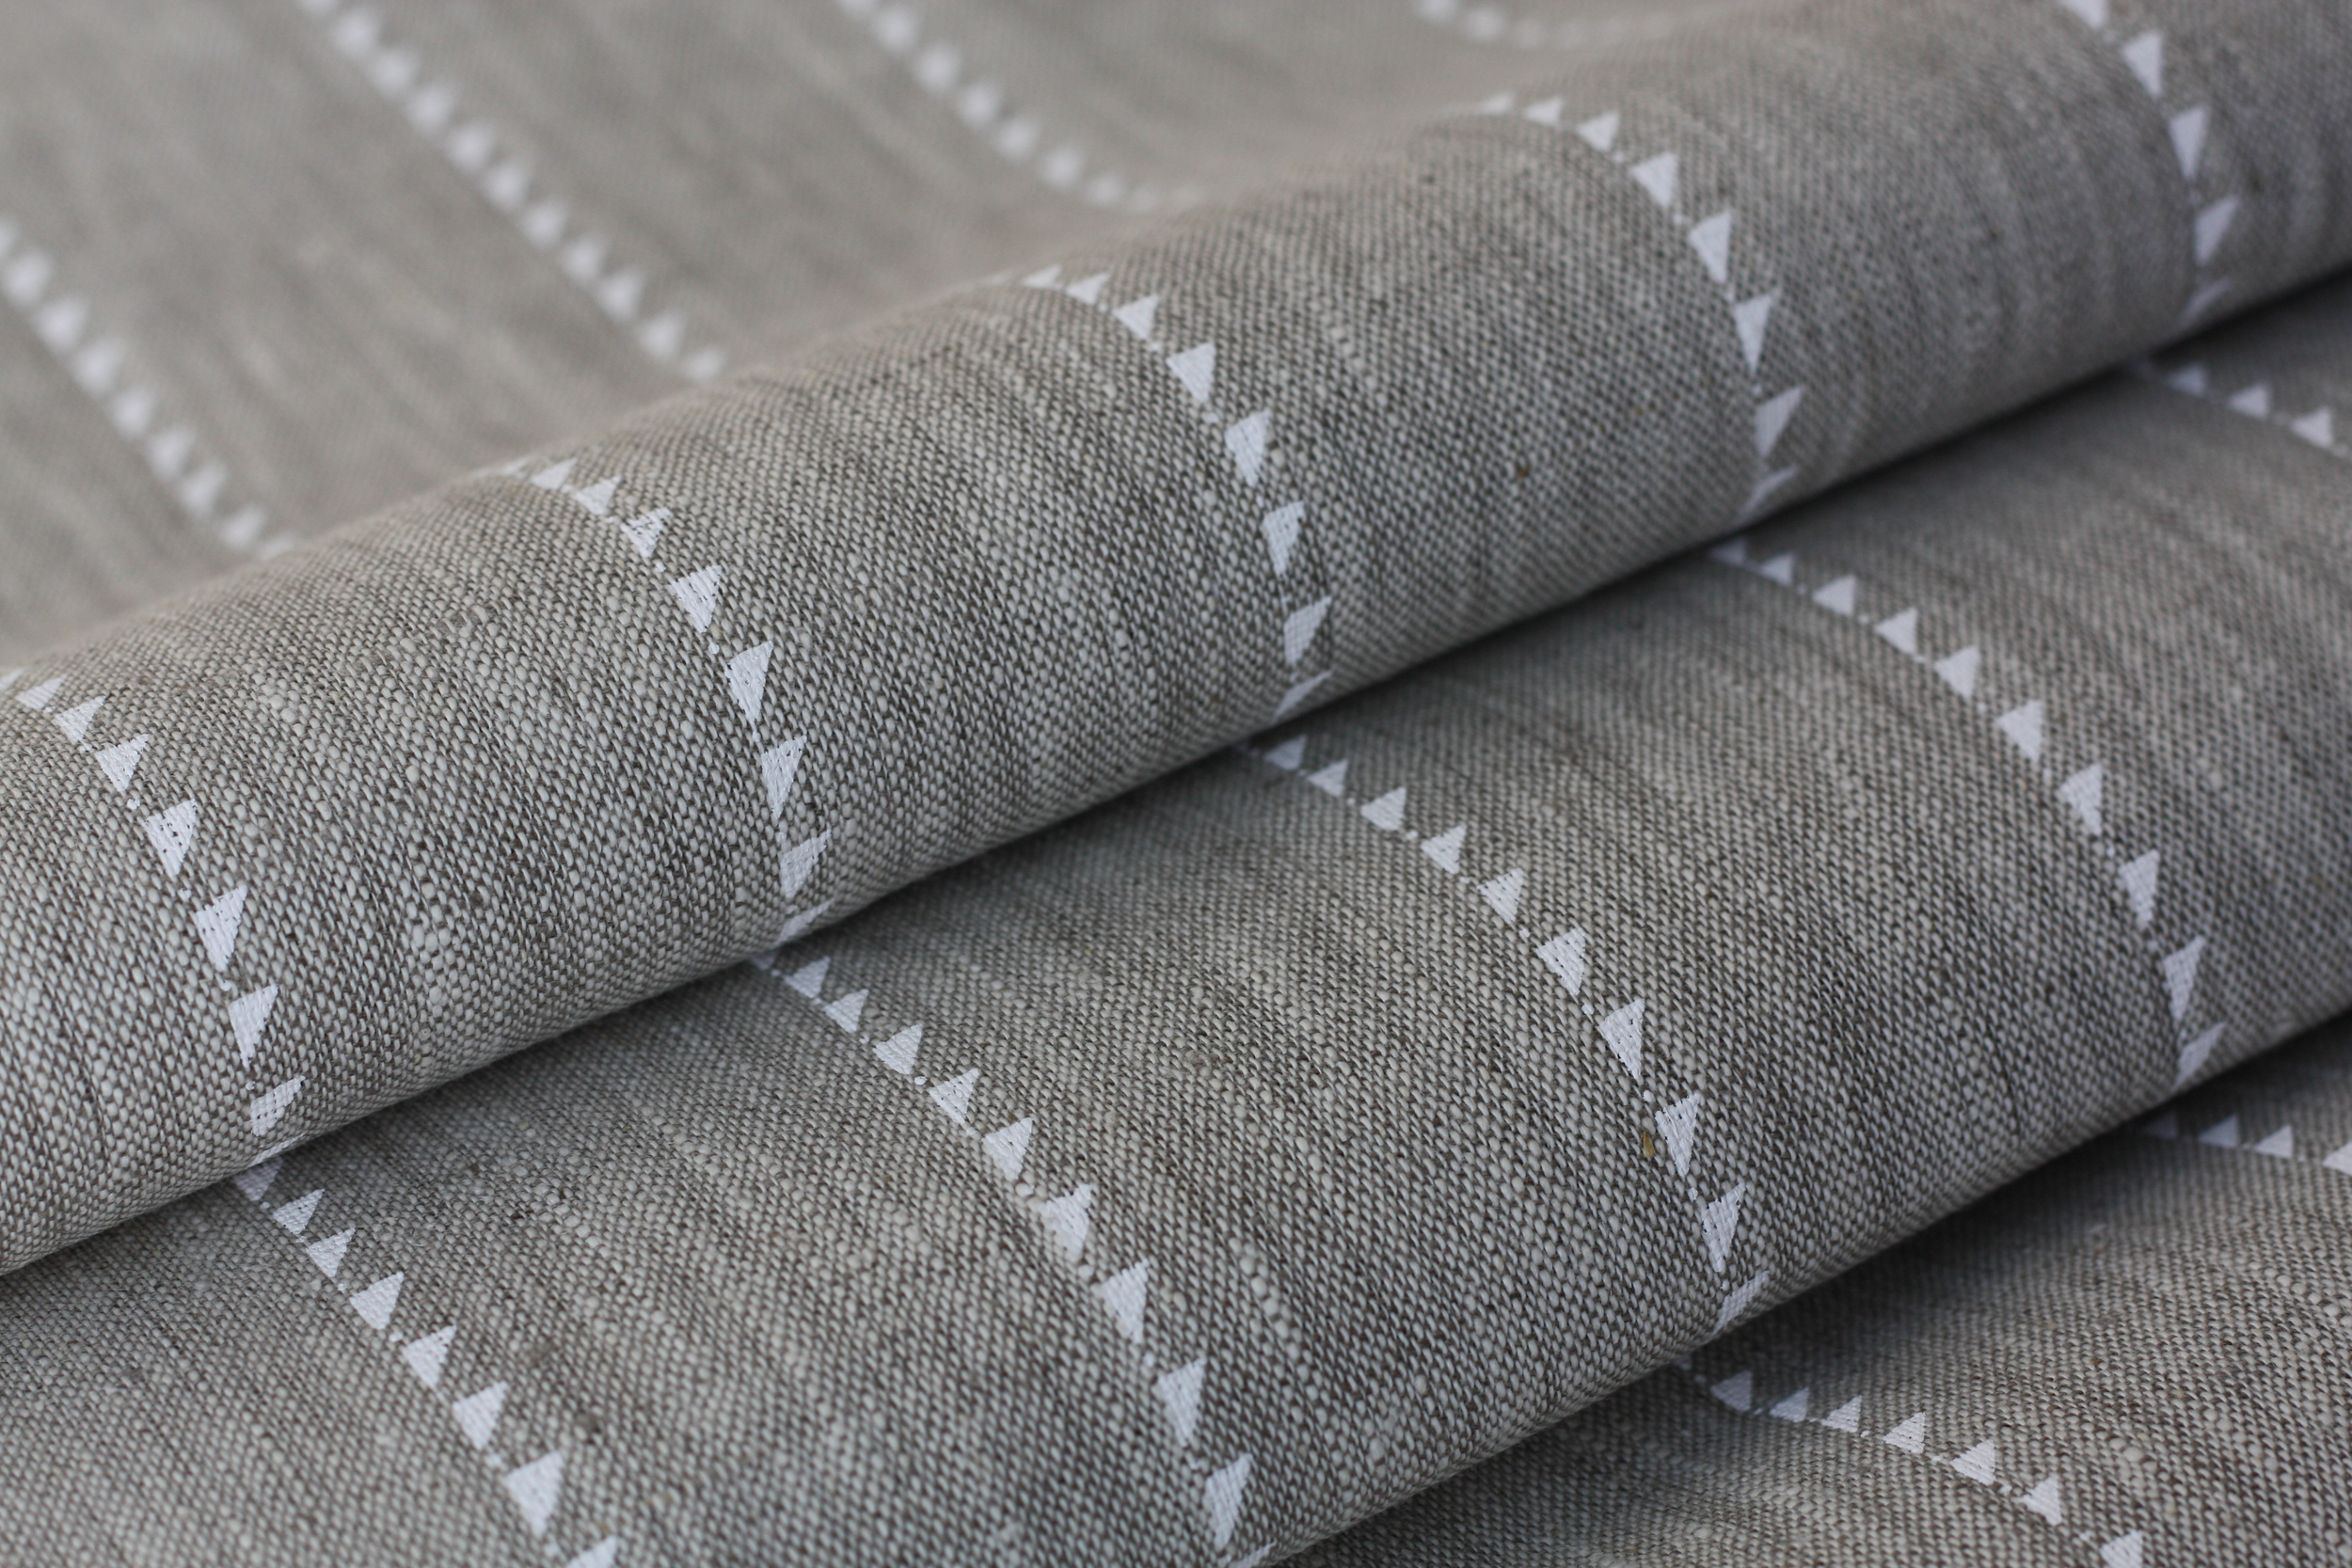 Prestbury Blade stripe in White on Natural Linen